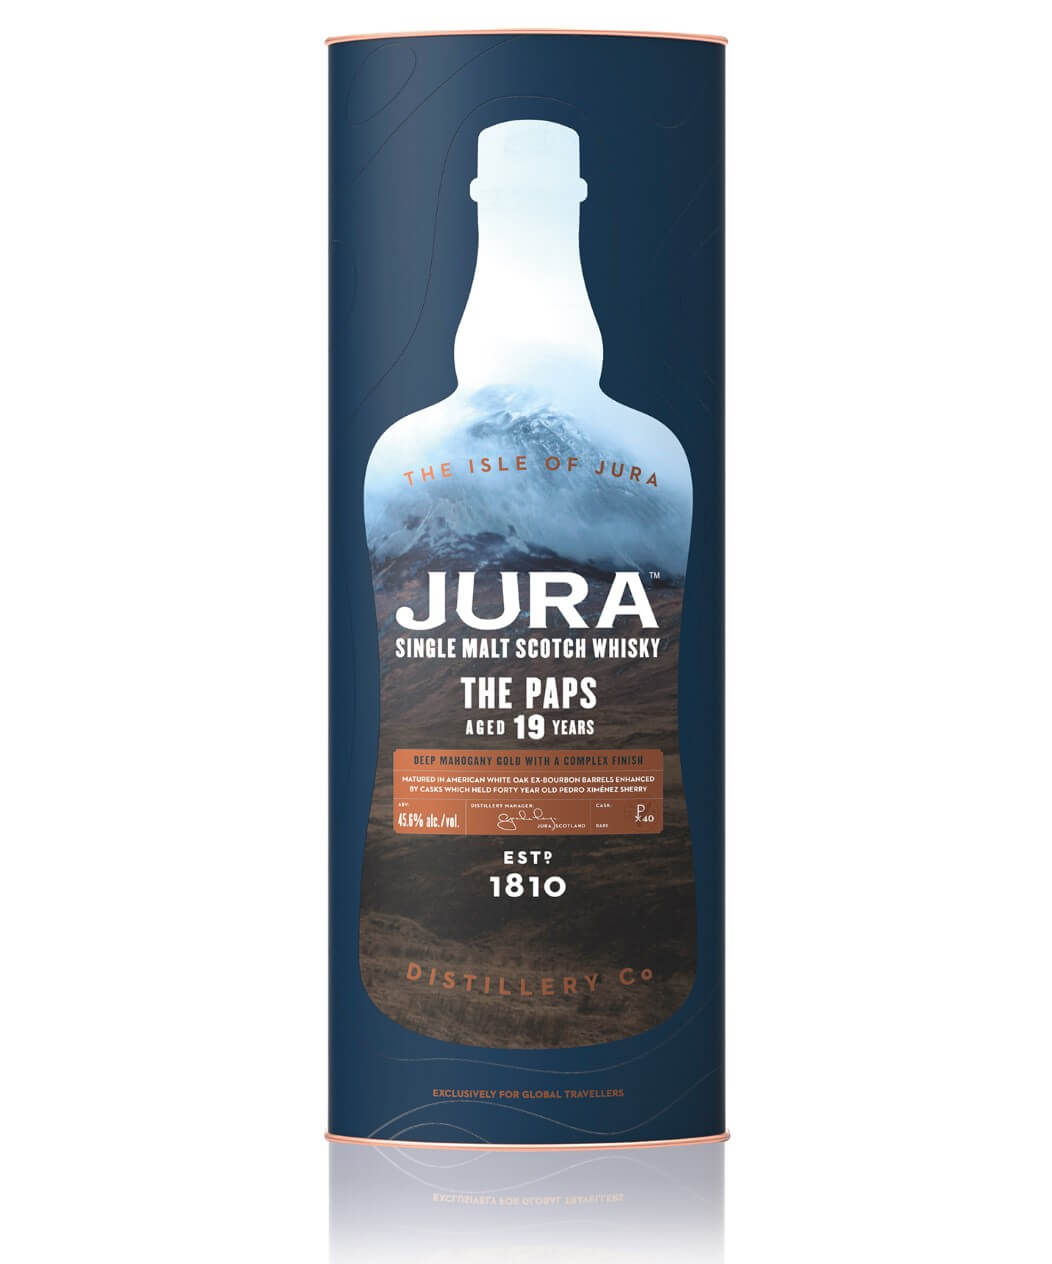 Jura, The Paps 19 Years Old